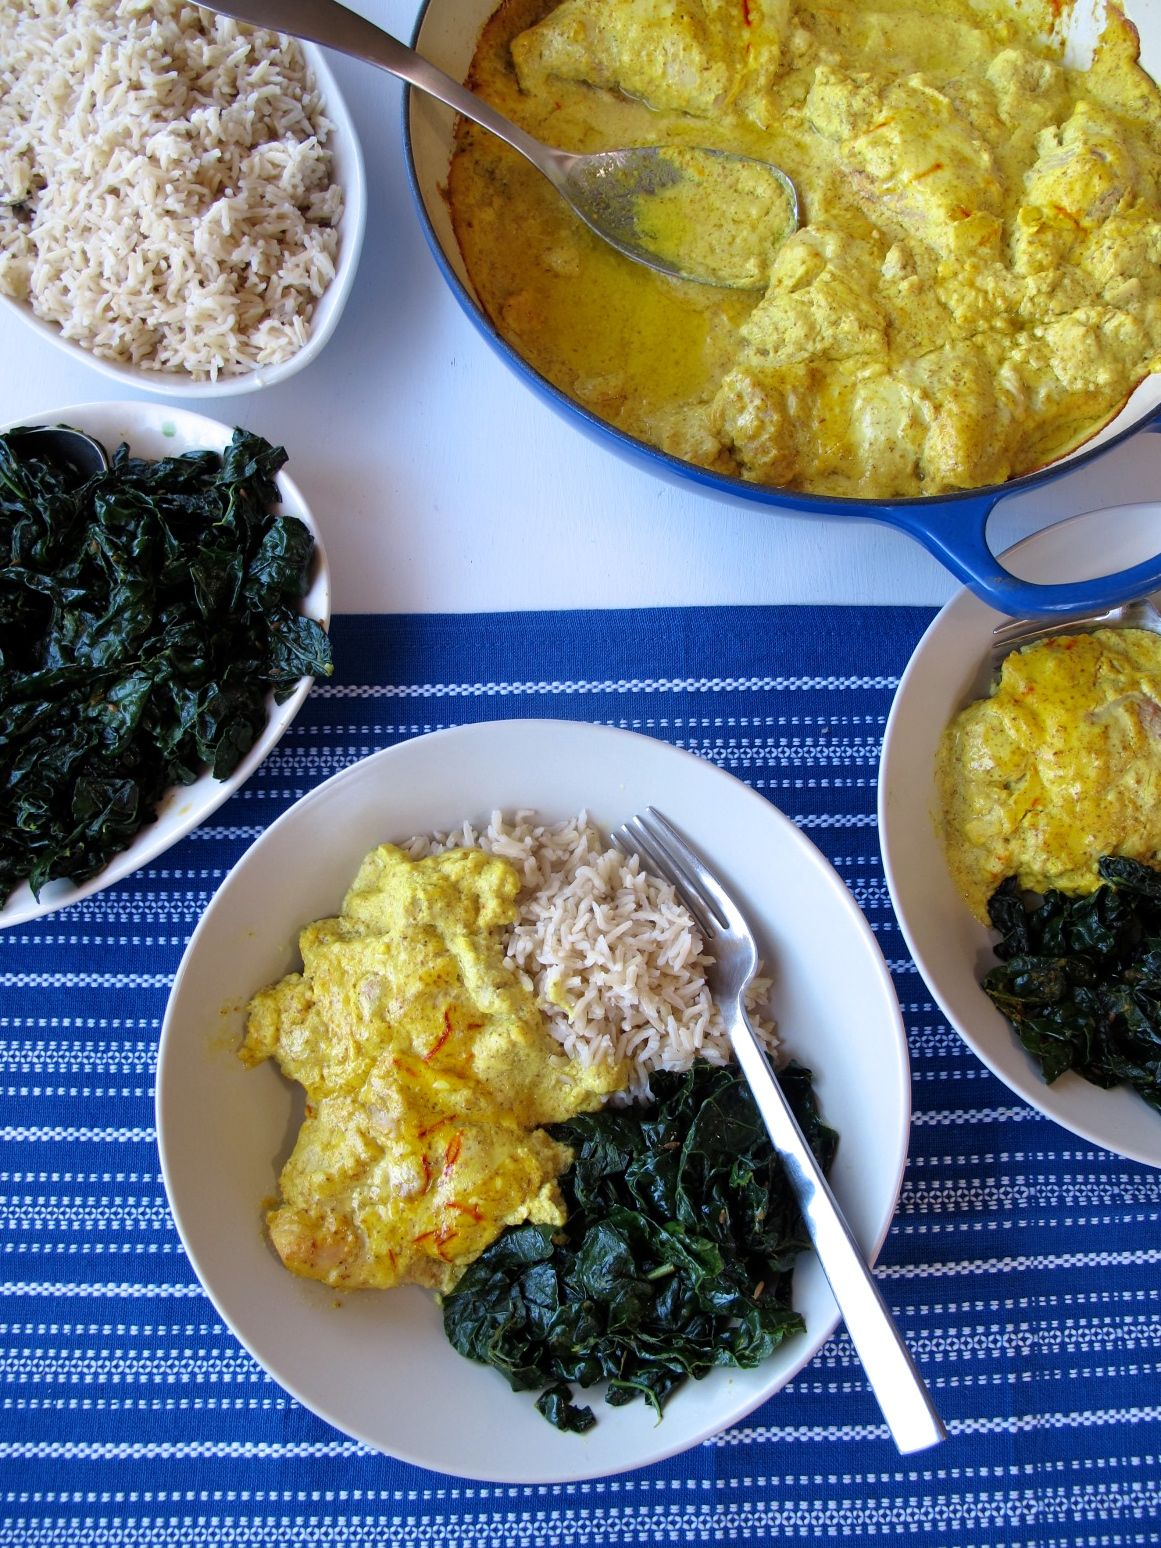 Nepali spiced almond chicken and kale spontaneous tomato nepali spiced almond chicken masaledar badami kukhura with spiced kale forumfinder Choice Image